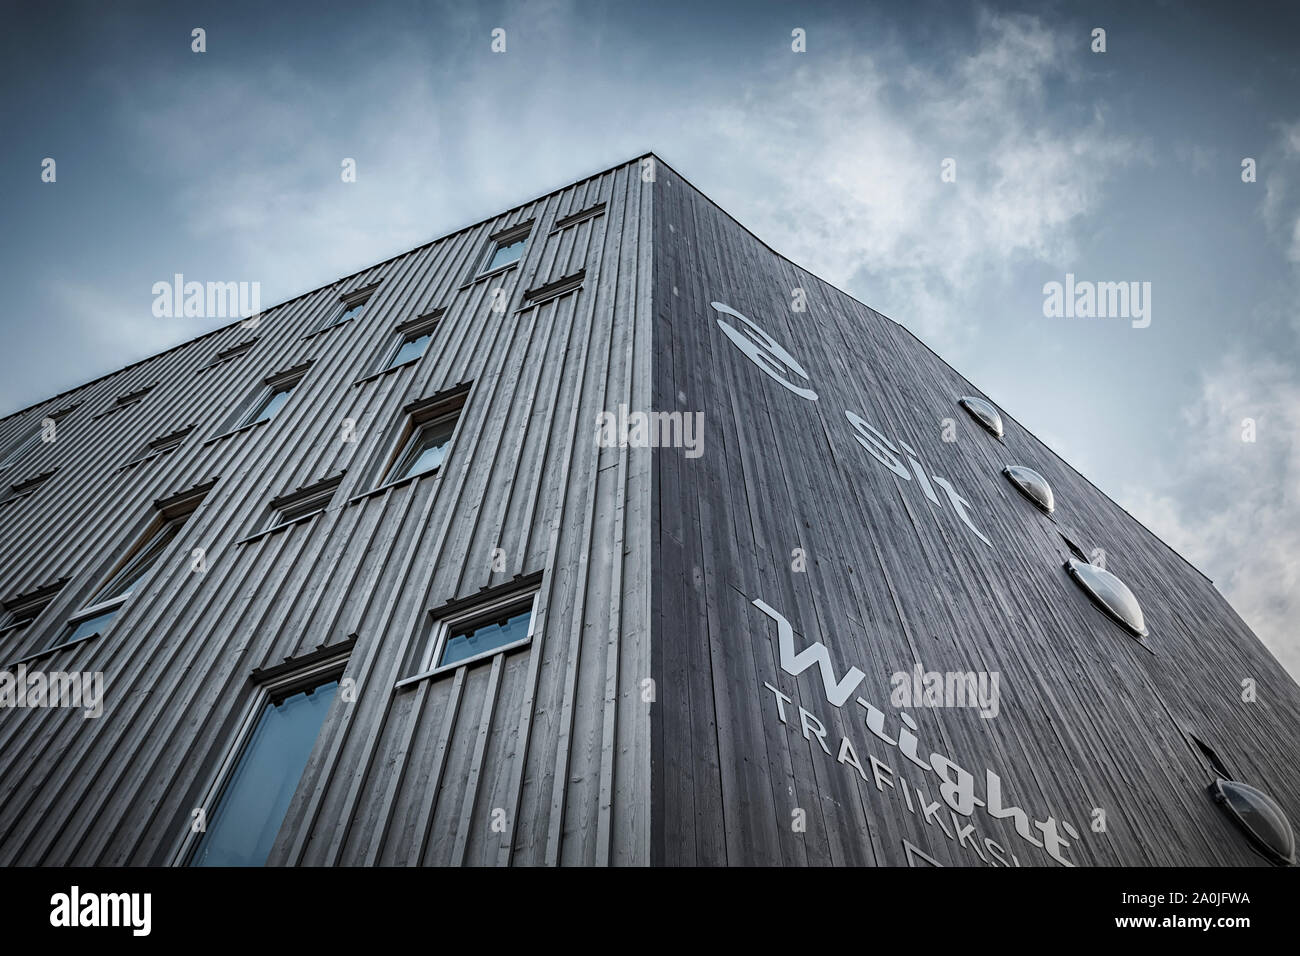 TRONDHEIM, NORWAY - SEPTEMBER 07, 2019: Teknobyen housing is where 116 students live in small apartments with bathrooms, while sharing the worlds larg Stock Photo